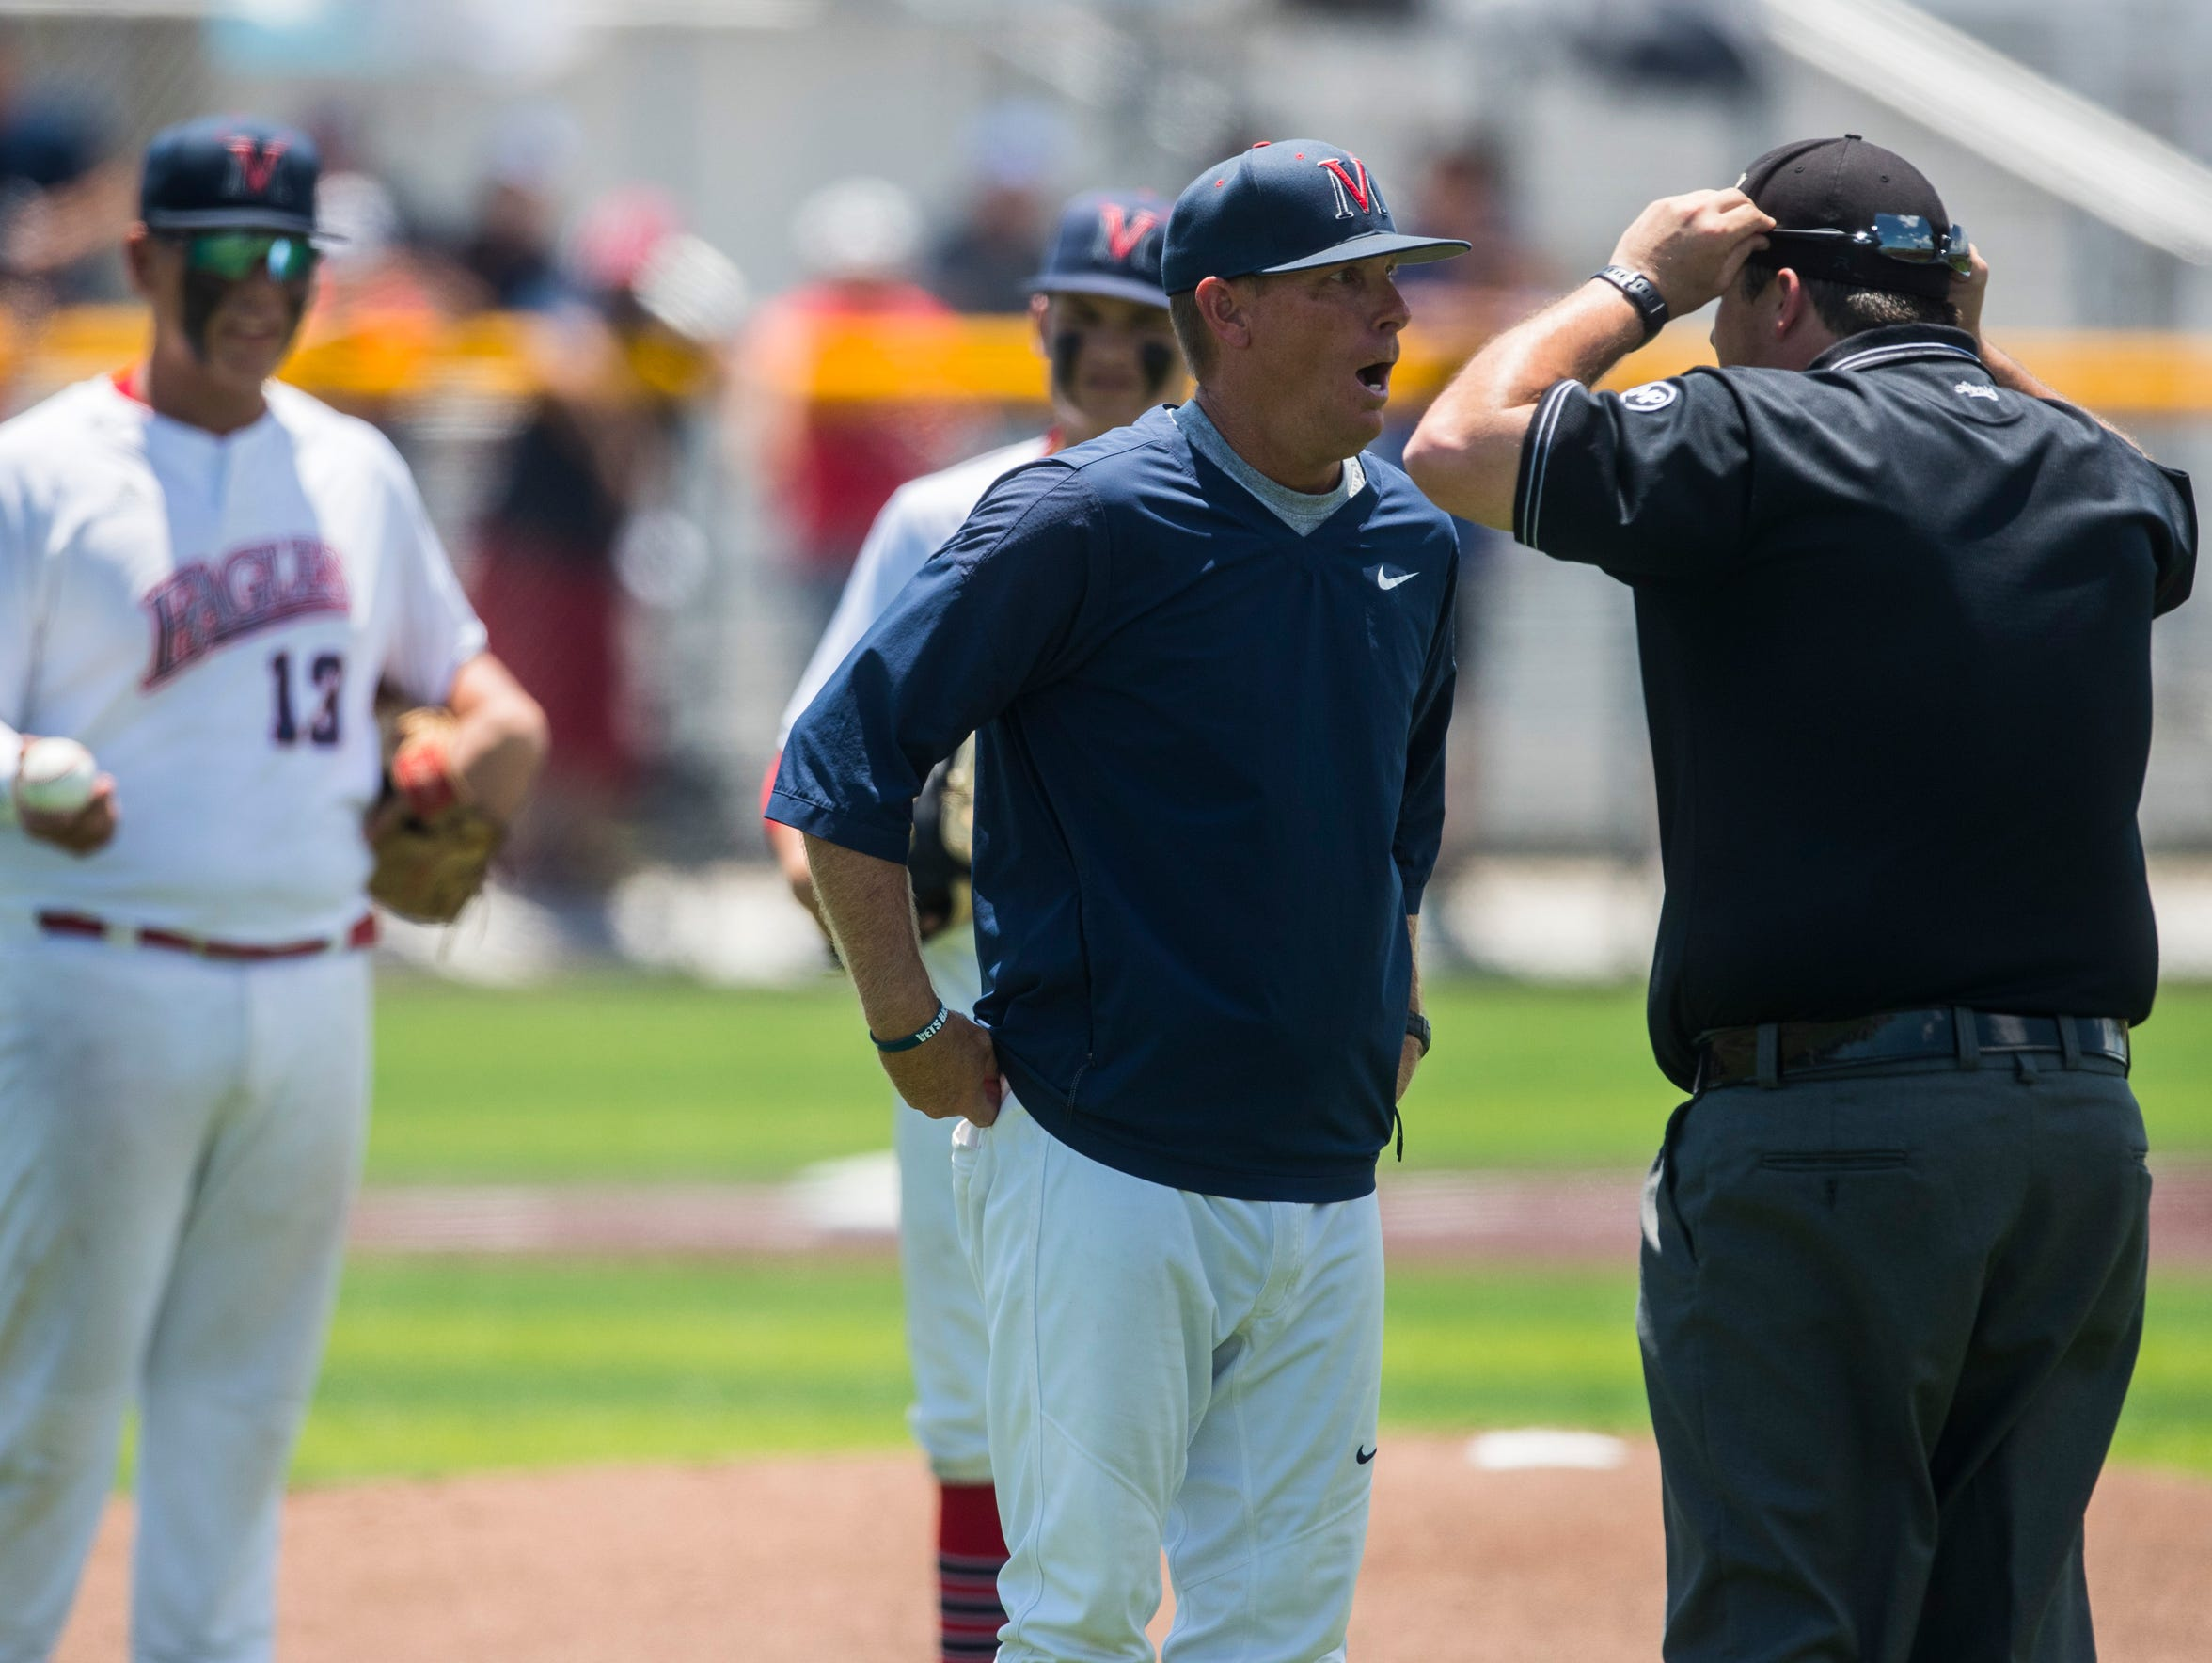 Veterans Memorial head coach Lee Yeager argues a call